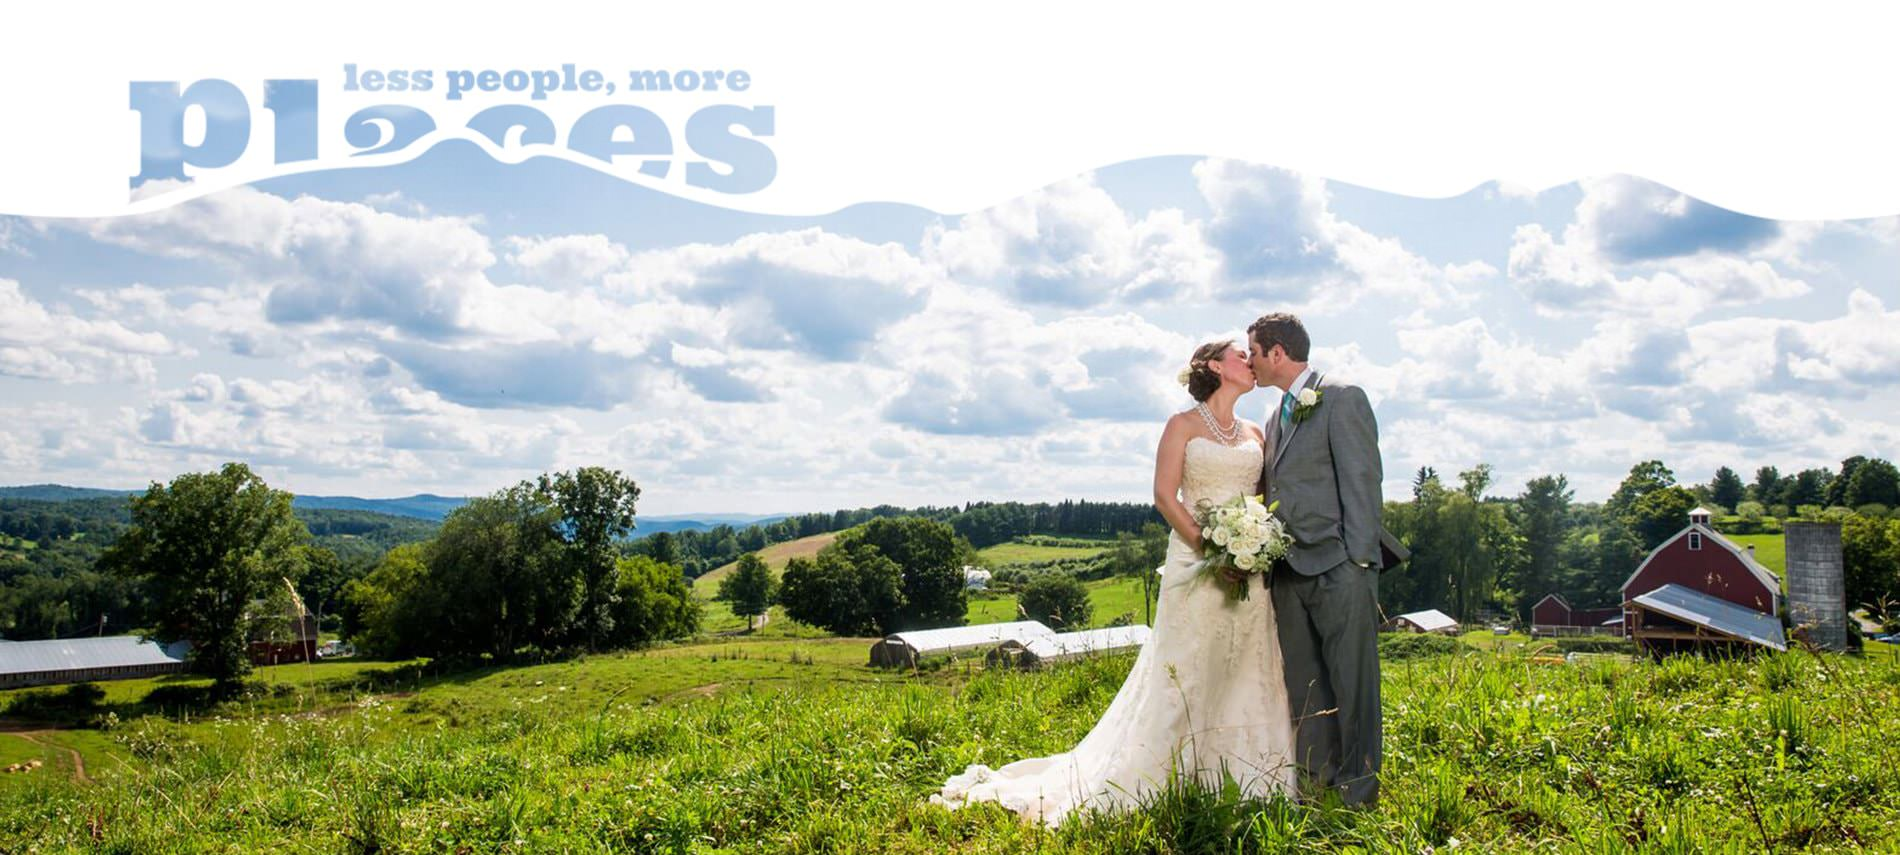 Bride and groom kissing in a grassy field surrounded by trees and blue skies with puffy clouds